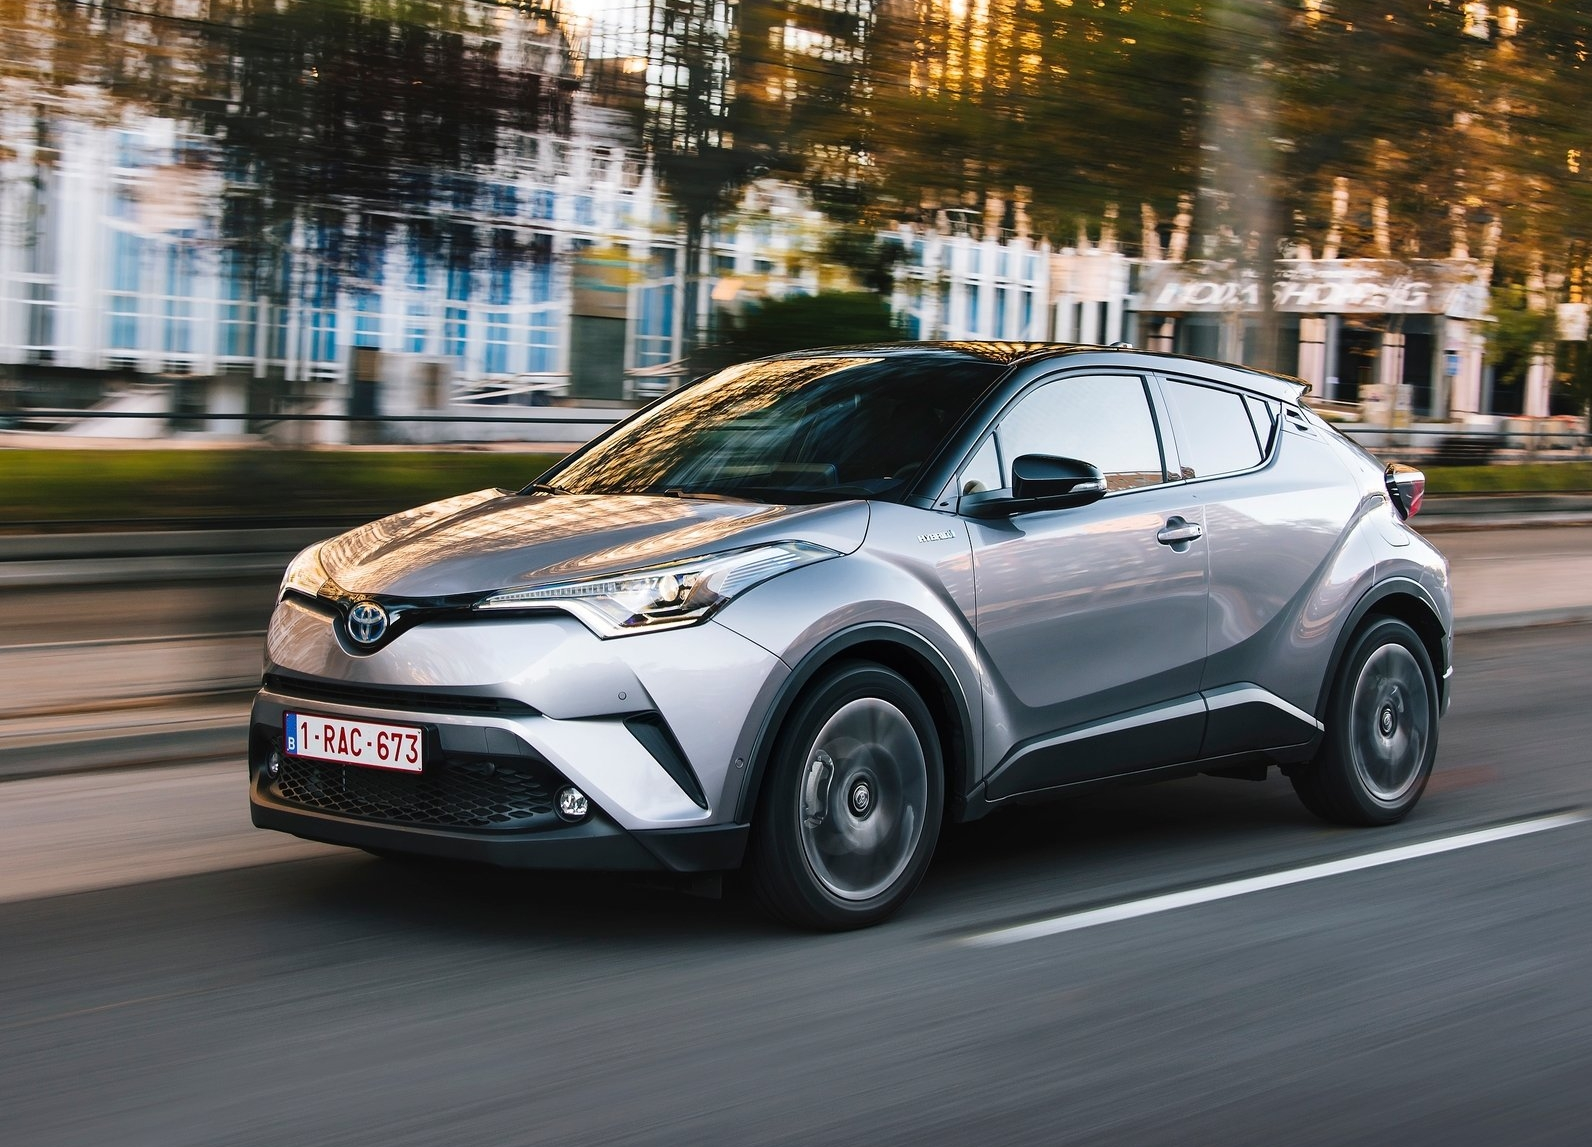 https://www.whatcar.lv/cars/Toyota/C-HR/d8ace091b68ee0659f4308150e9ab56b.jpg